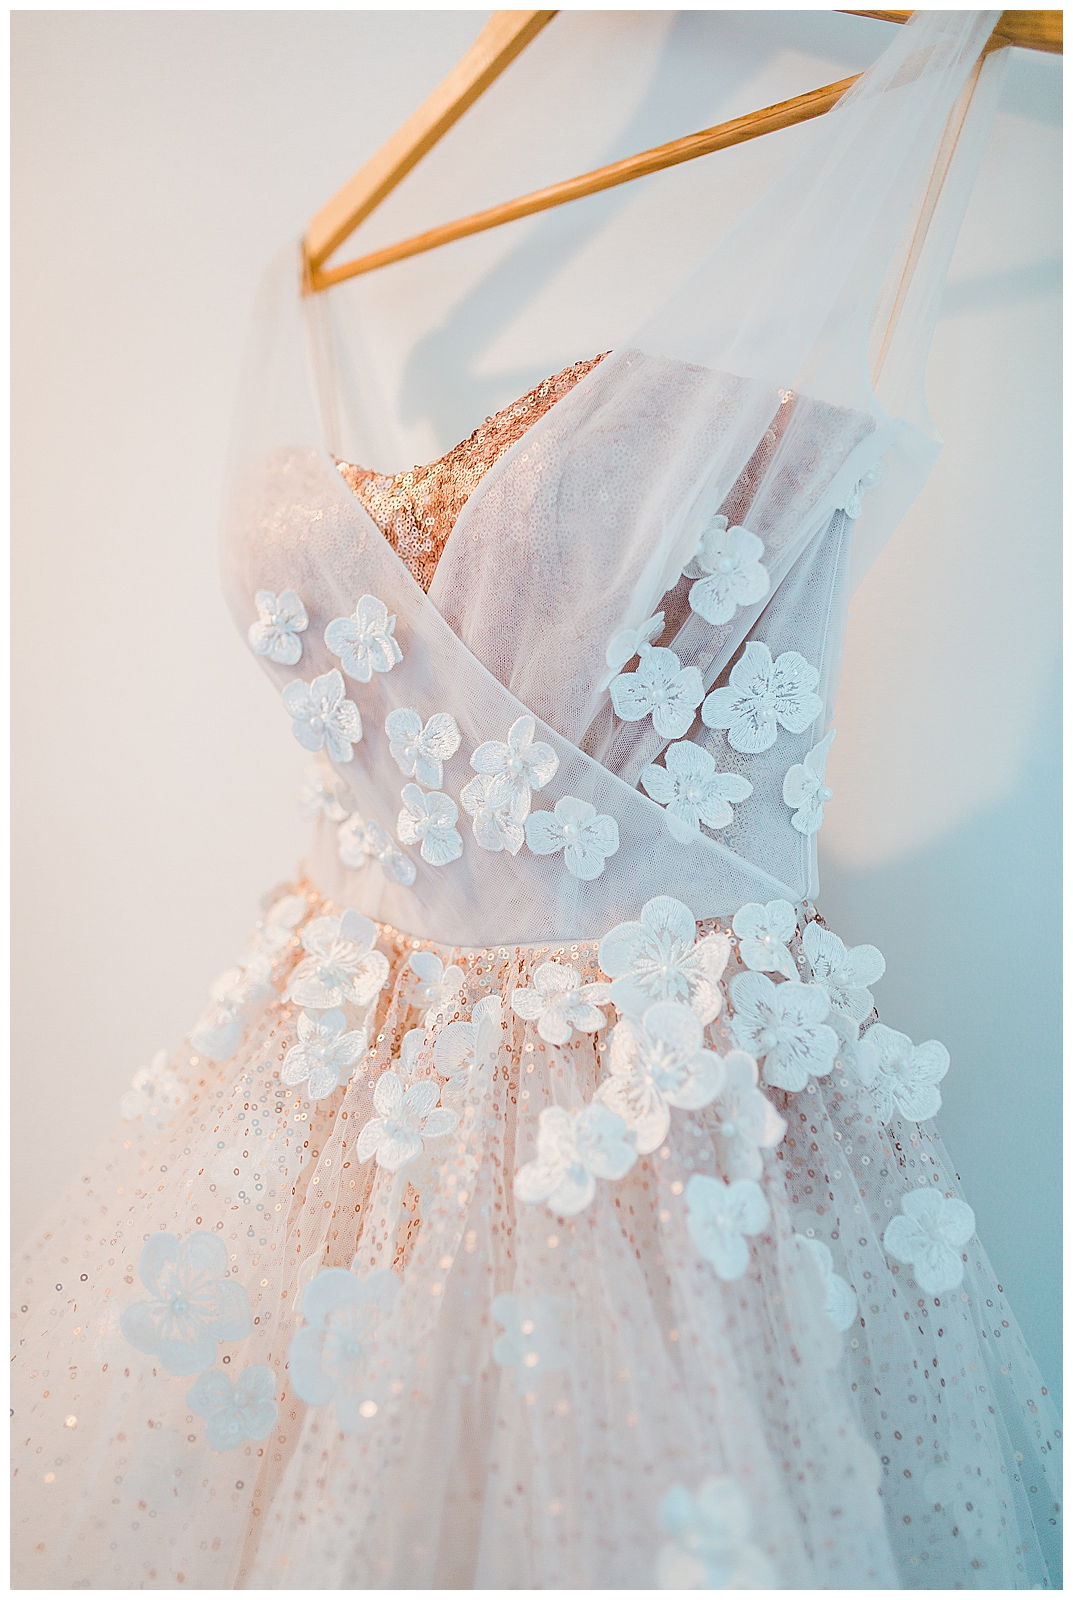 anomalie-wedding-dress-with-floral-appliques